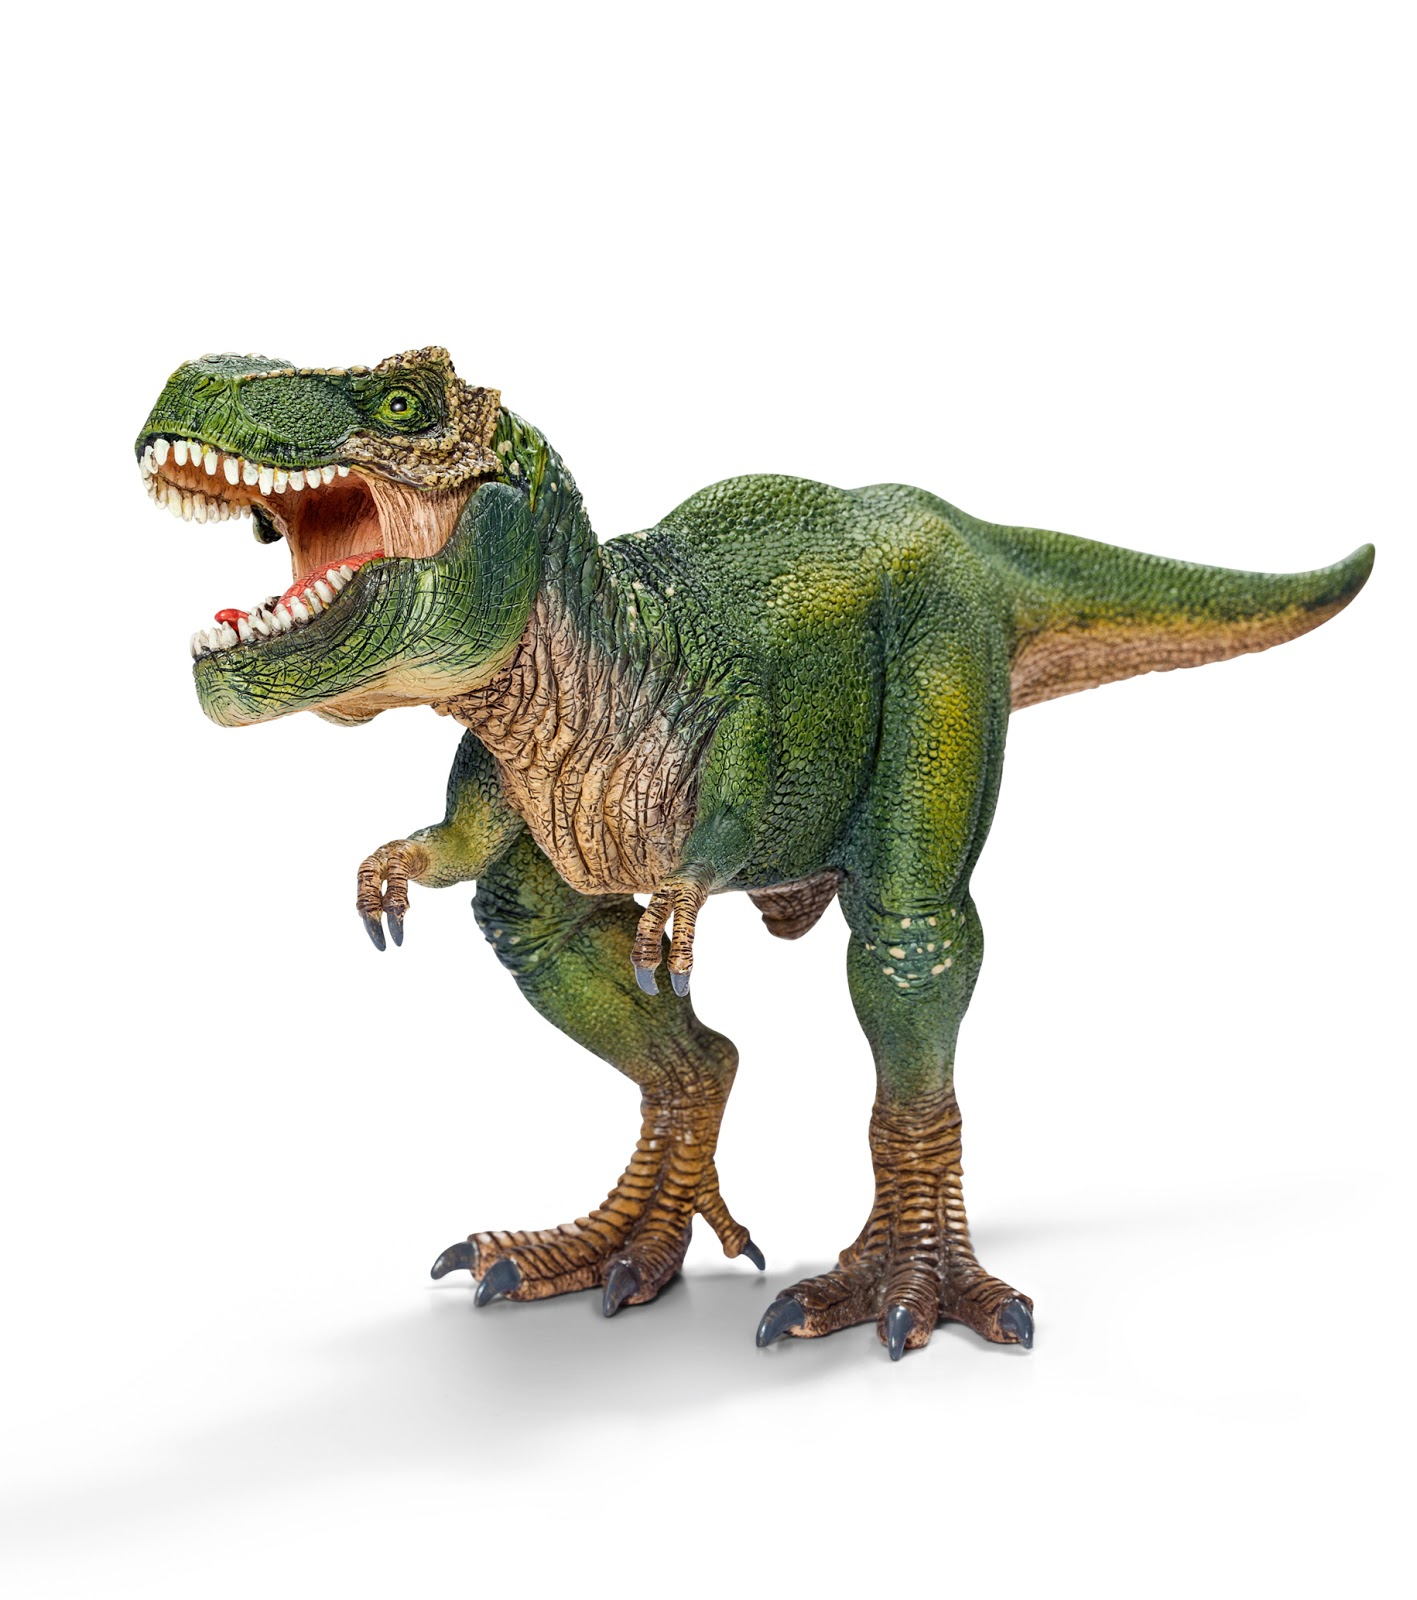 Madhouse Family Reviews Schleich Dinosaur Figures Review